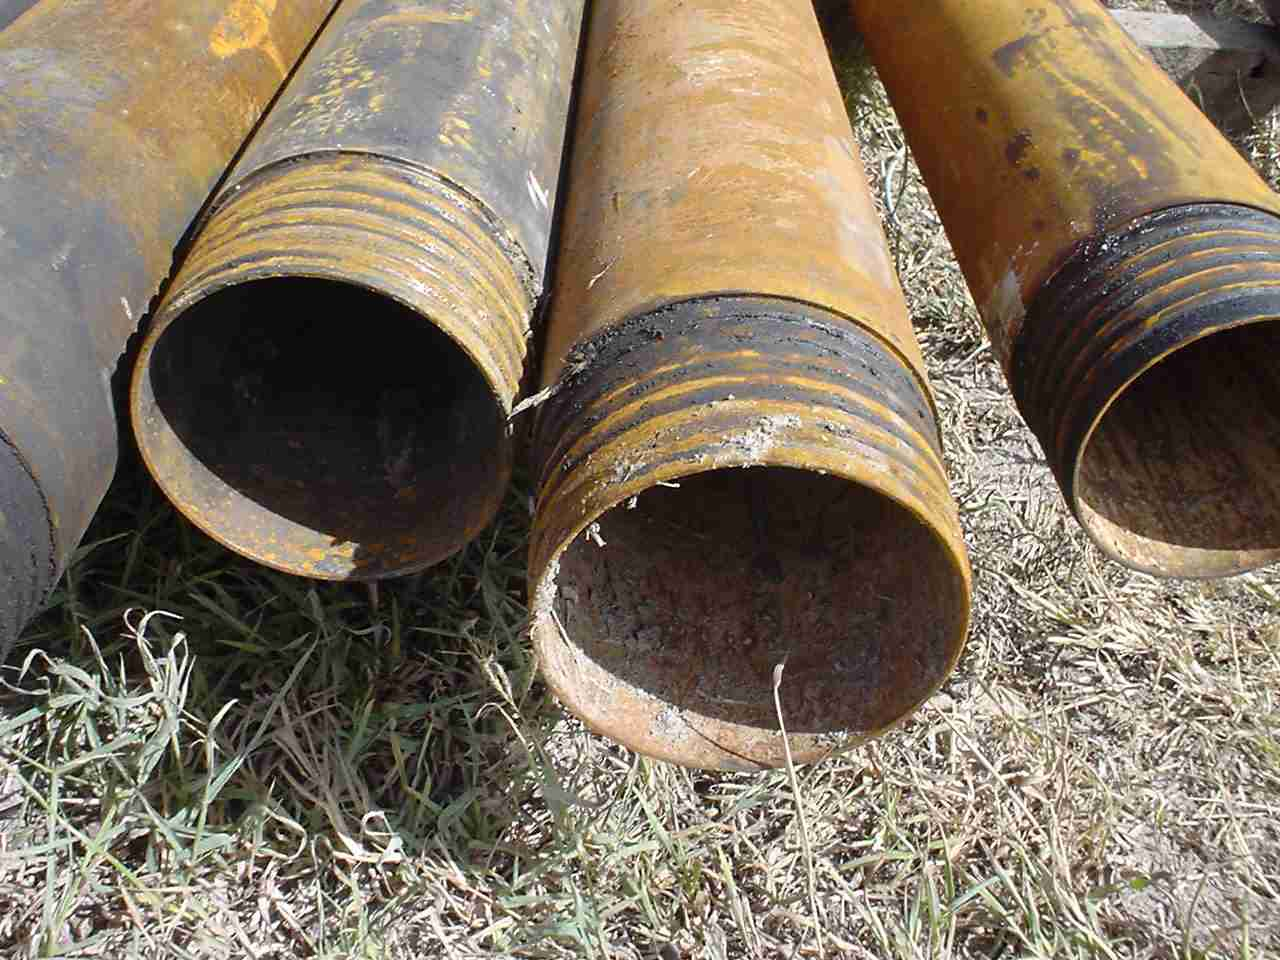 Casing Joints Casing Used As Drill Rod In This Particular